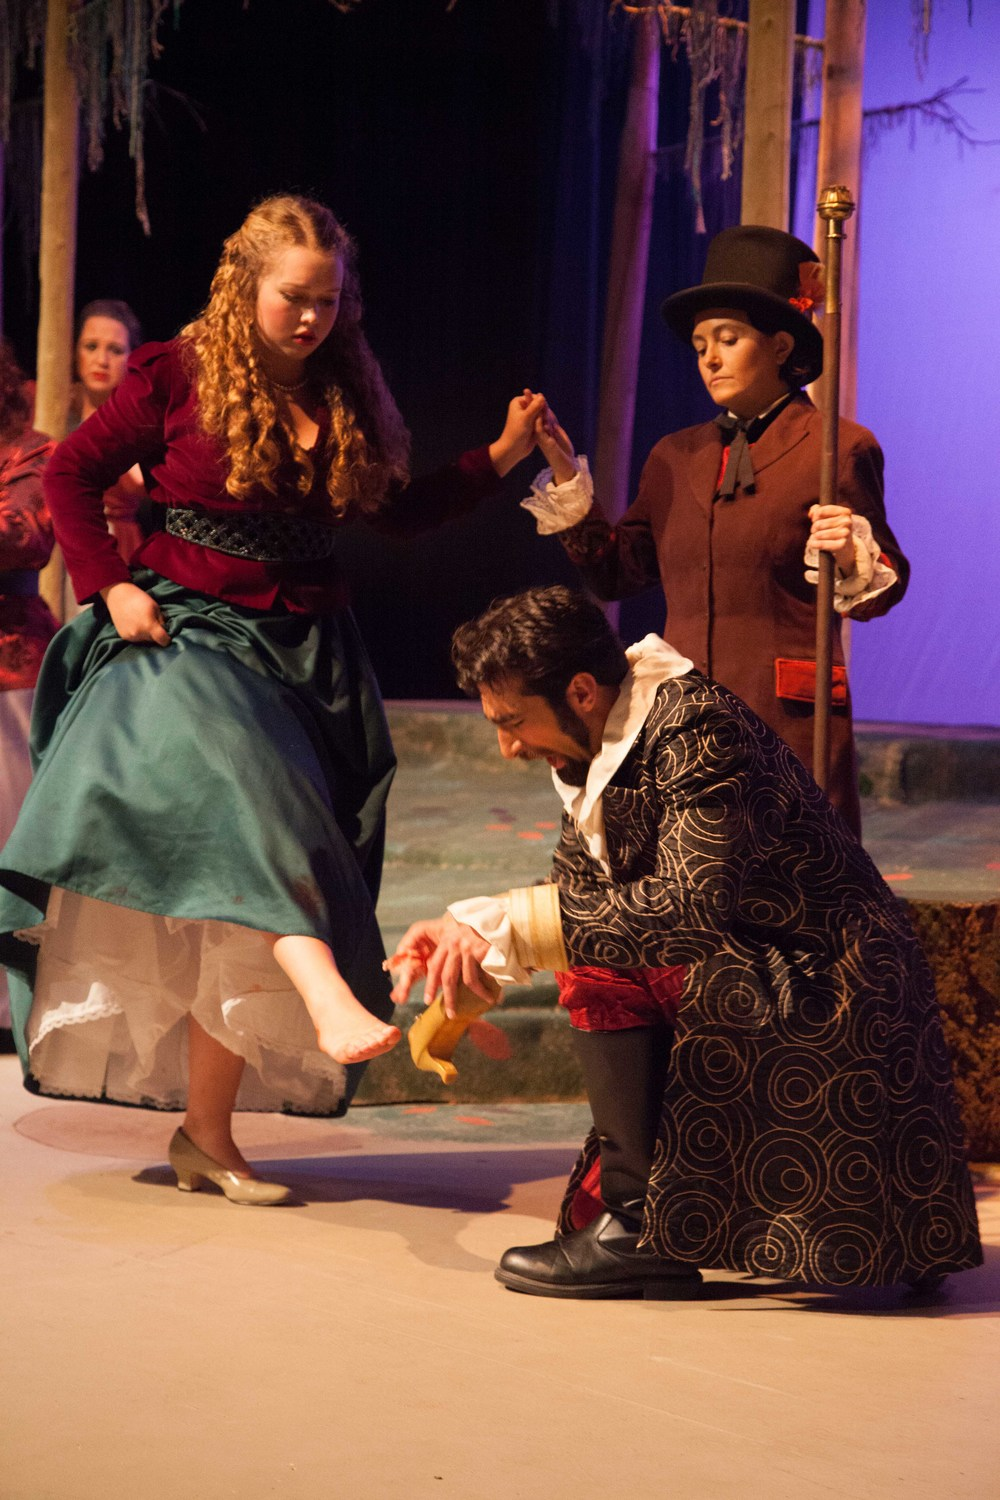 Lucy Pearce as The Steward with Hannah McConnaughey as Lucinda and Ethan Berkley as Cinderella's Prince in Into the Woods, October 2014 - photo by j shu images